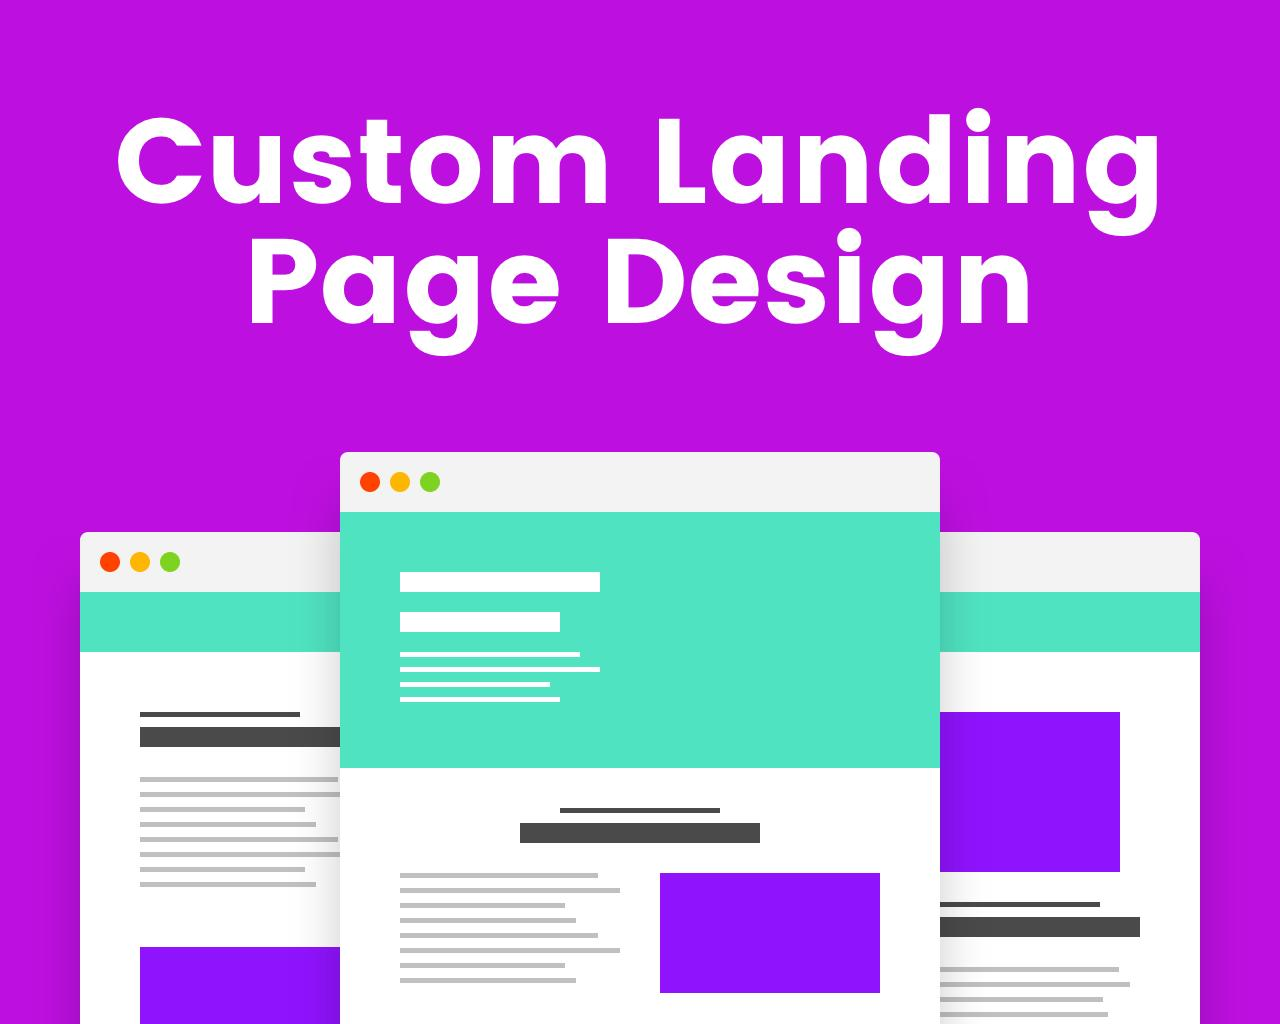 Custom Landing Page Design by Coffeecream - 109957